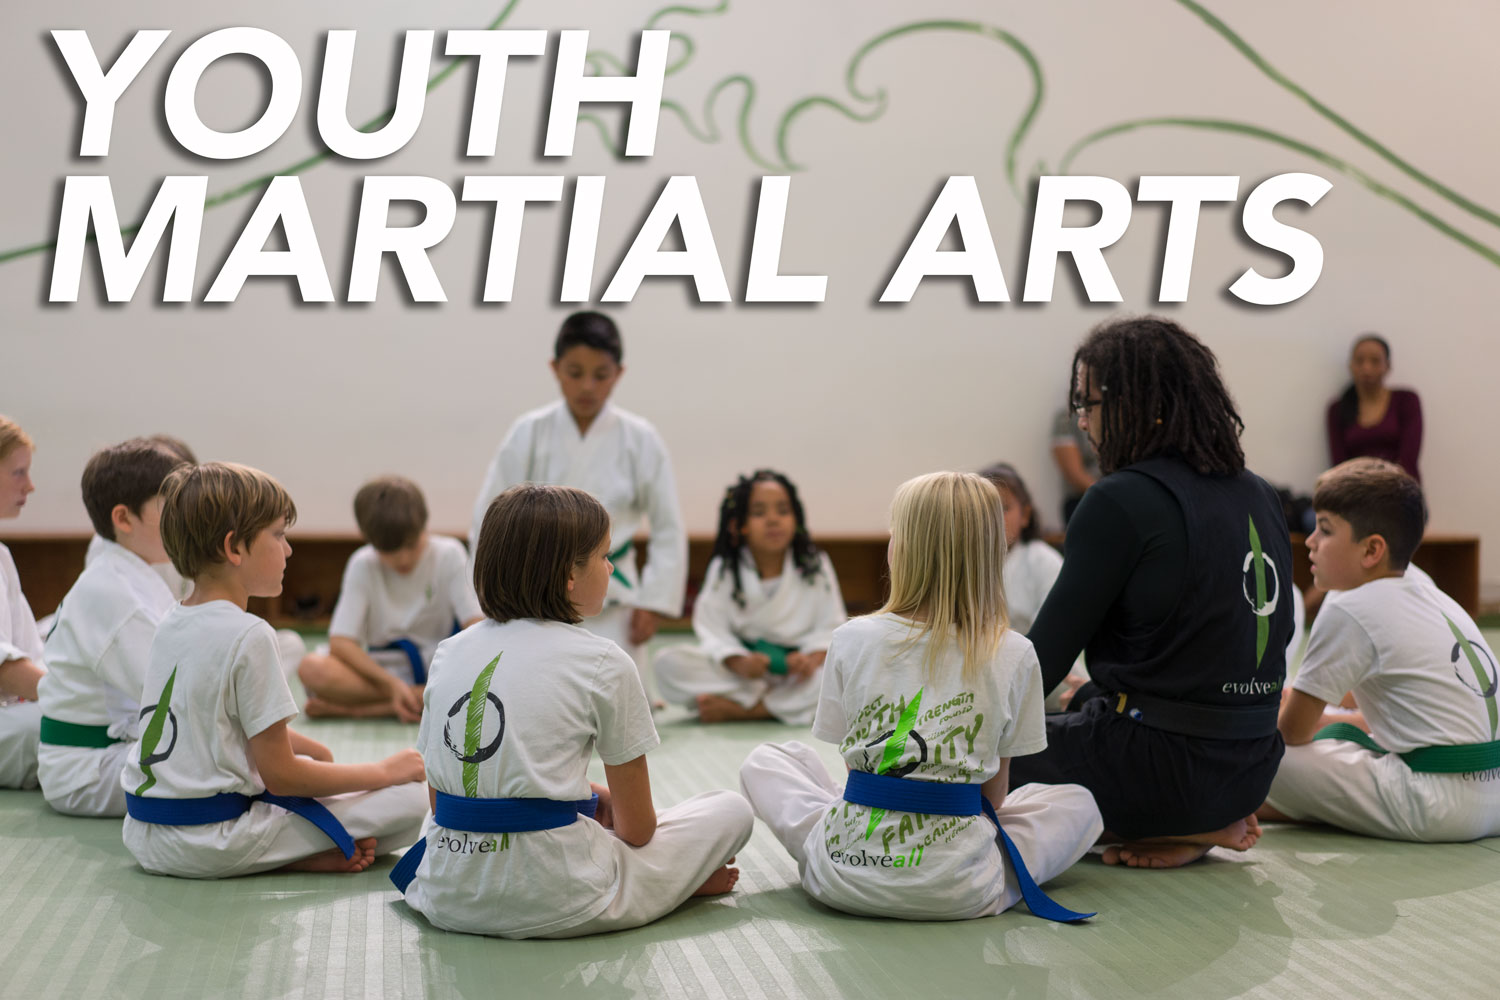 youth martial arts - Martial Arts